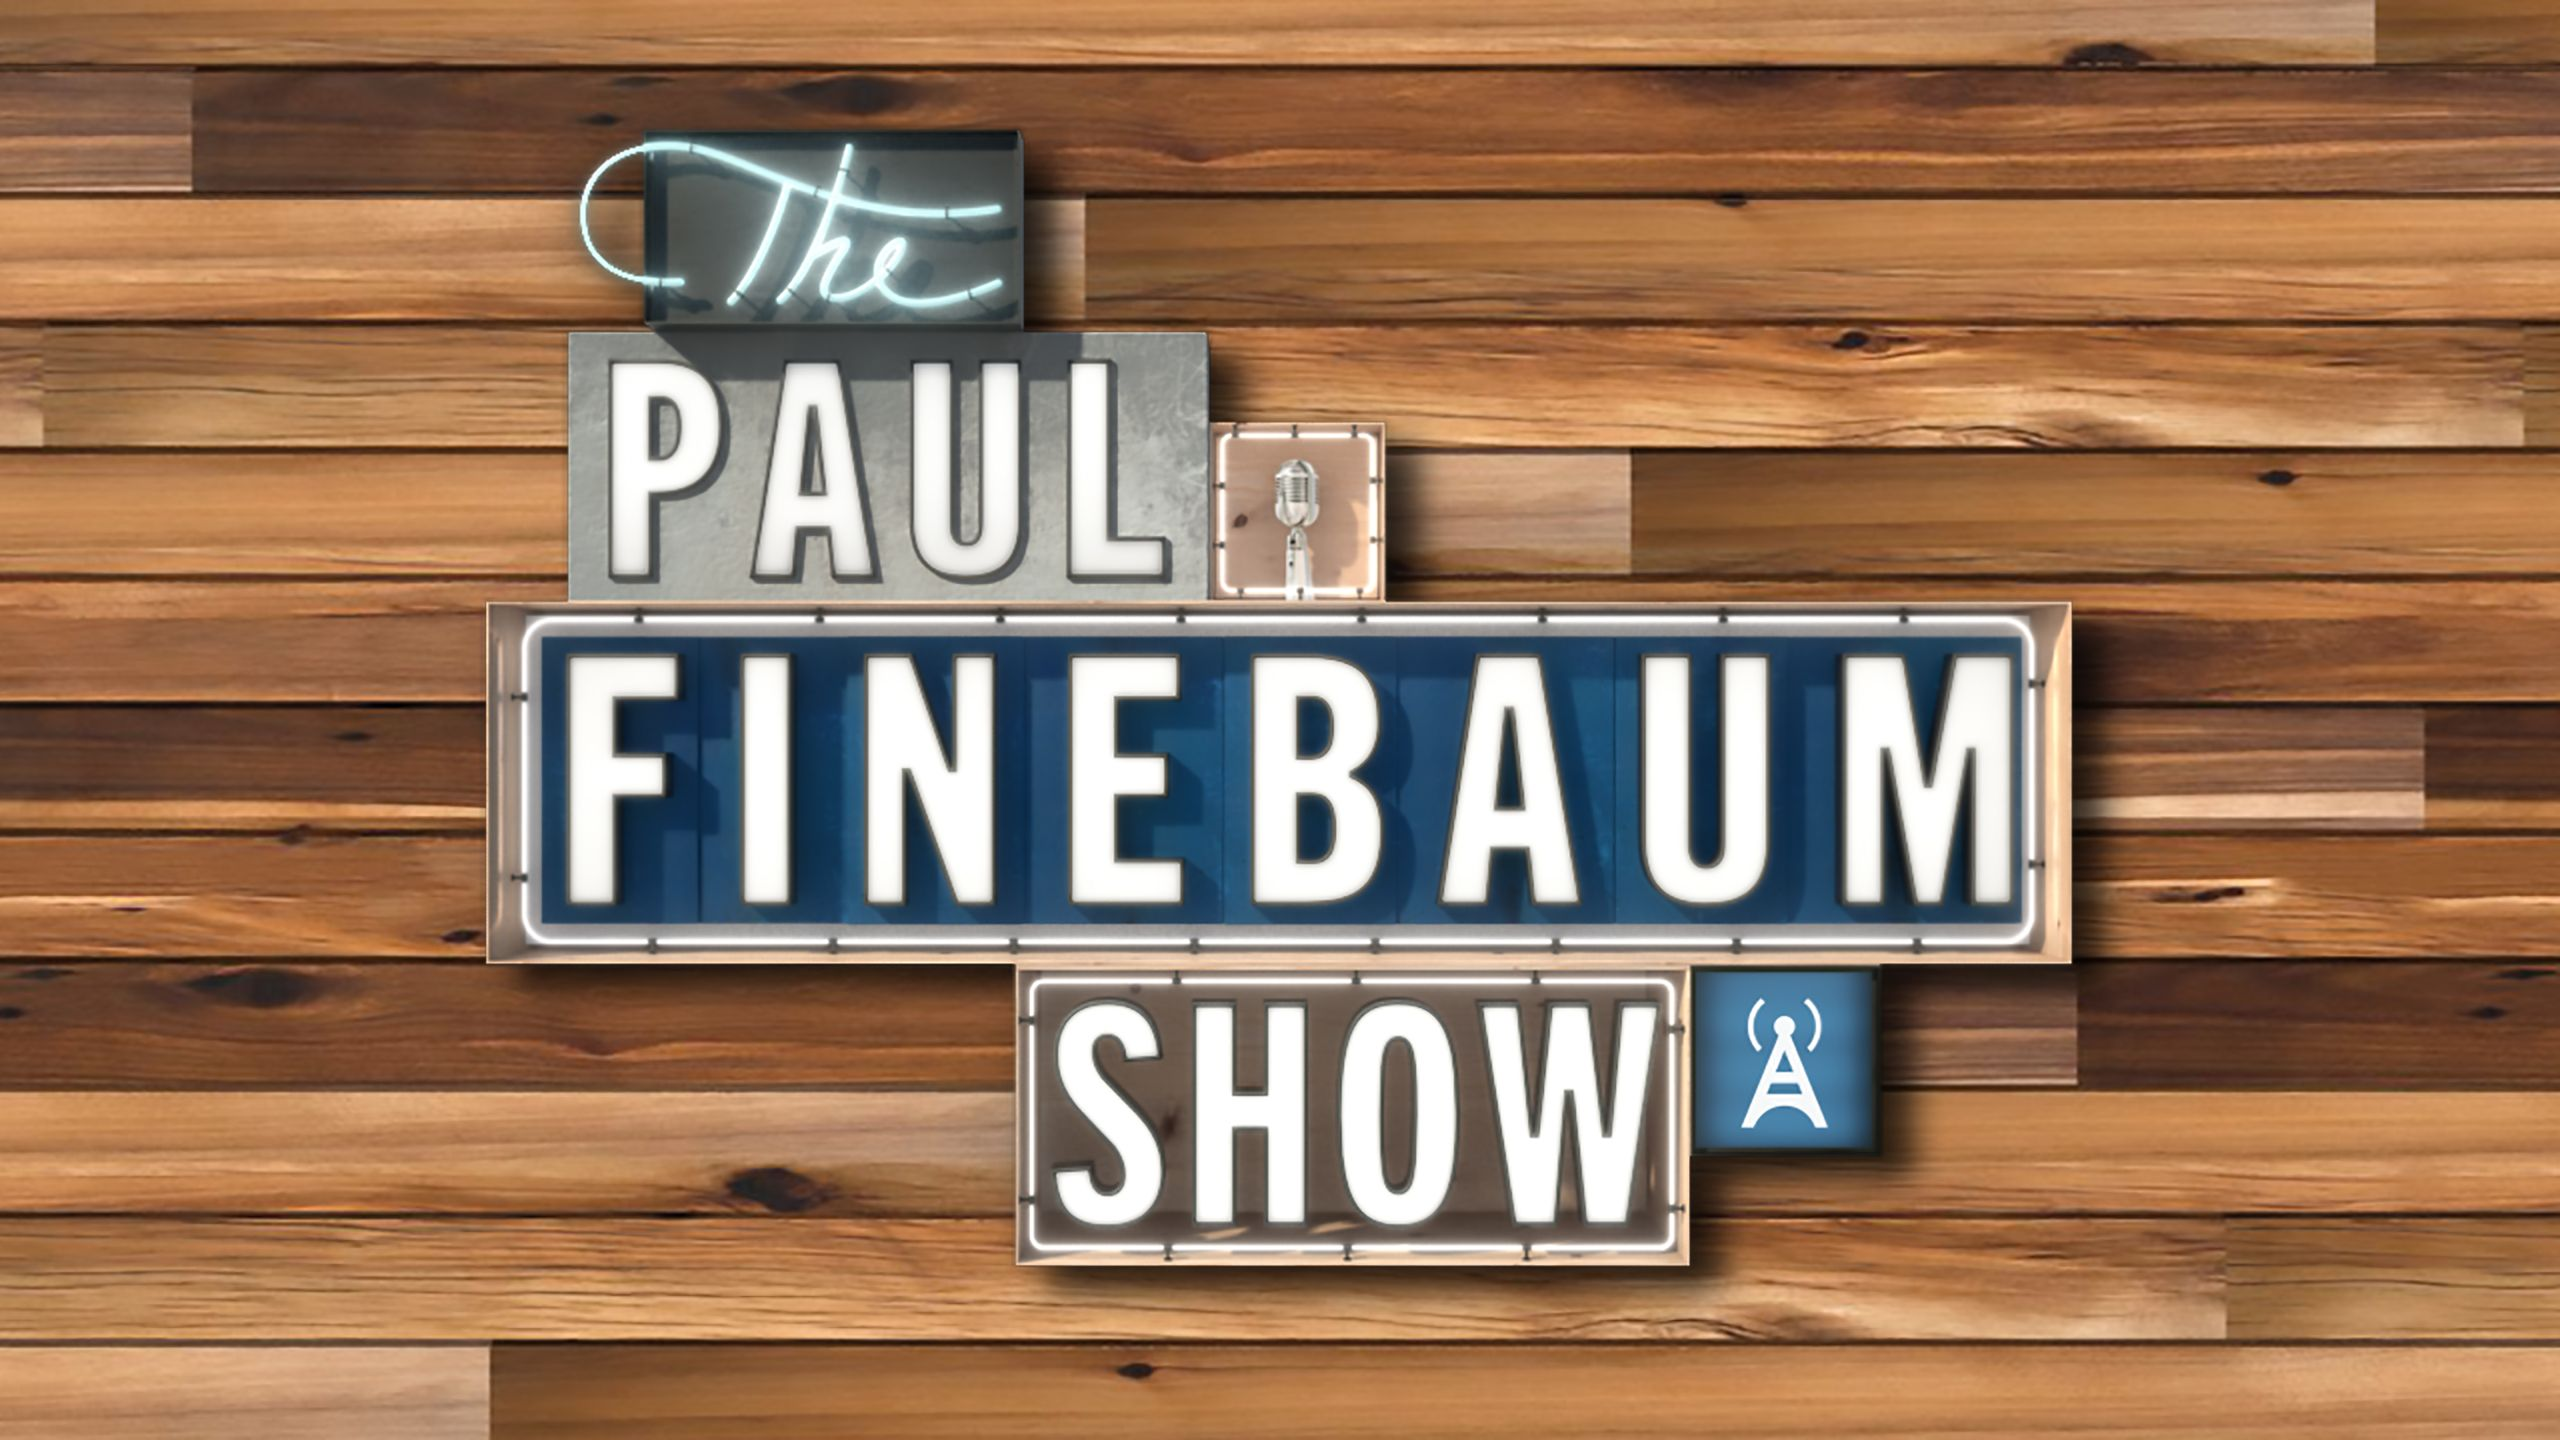 Wed, 12/13 - The Paul Finebaum Show